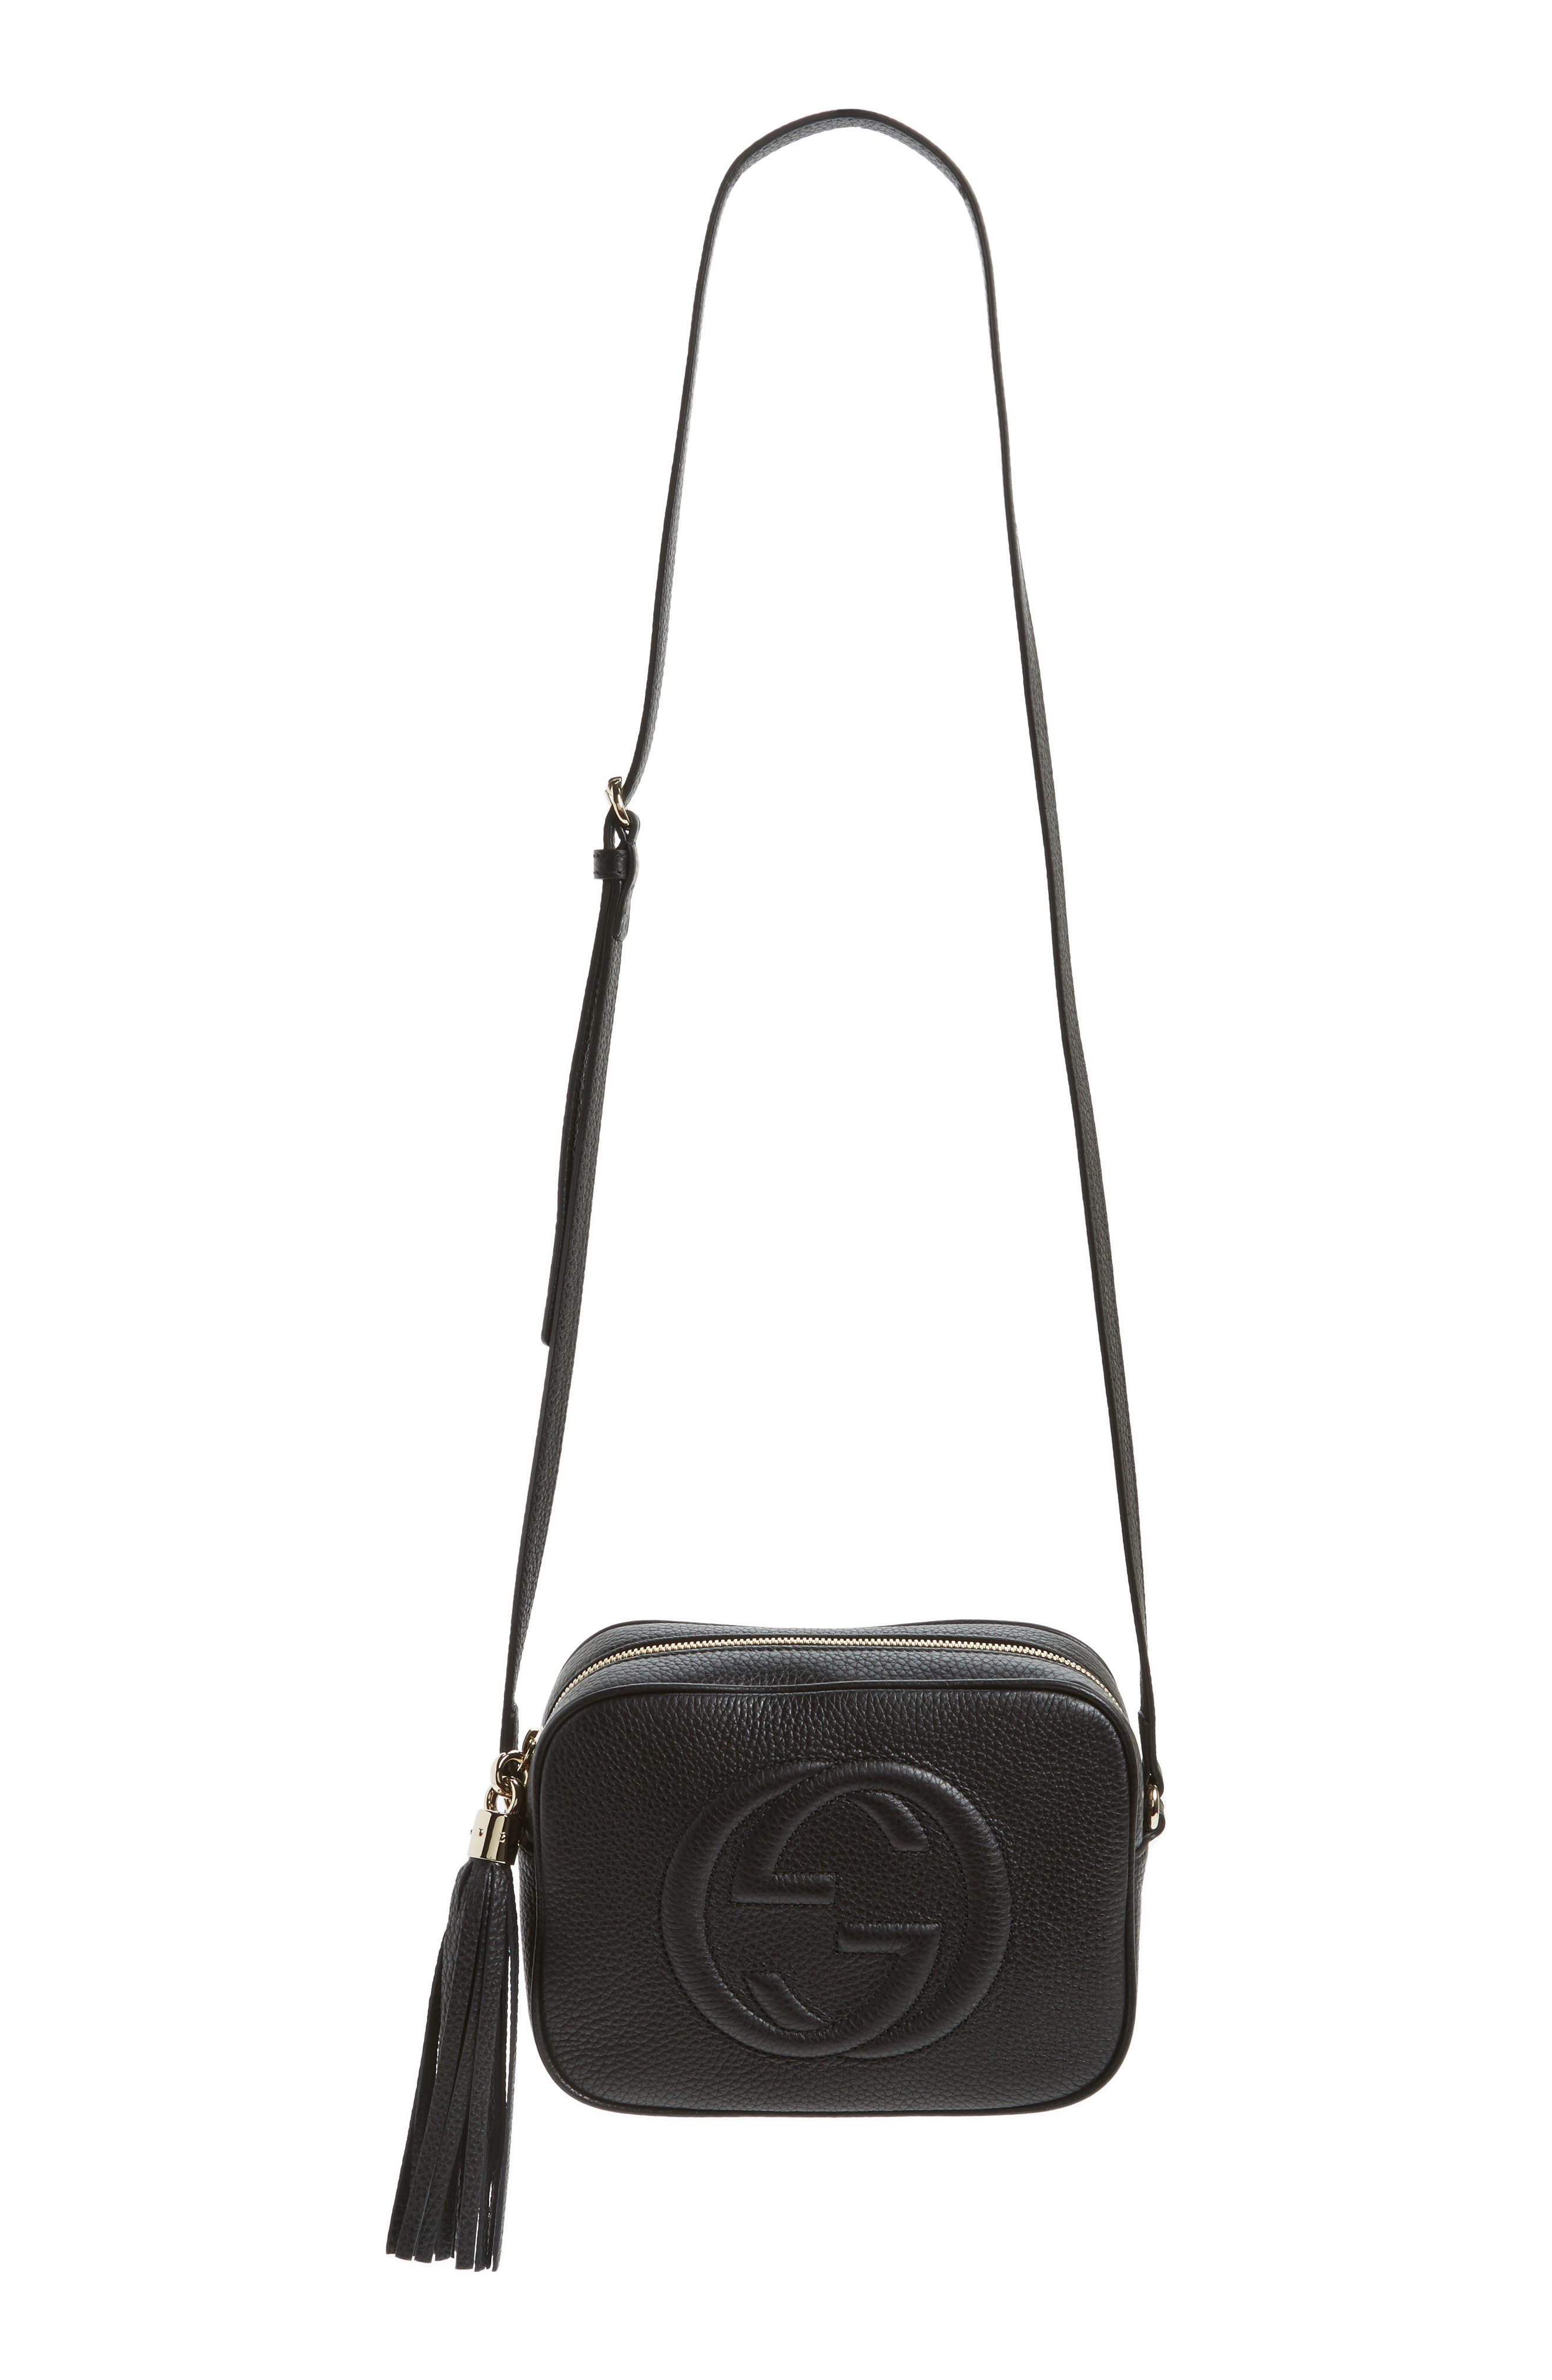 Main Image - Gucci Soho Disco Leather Bag